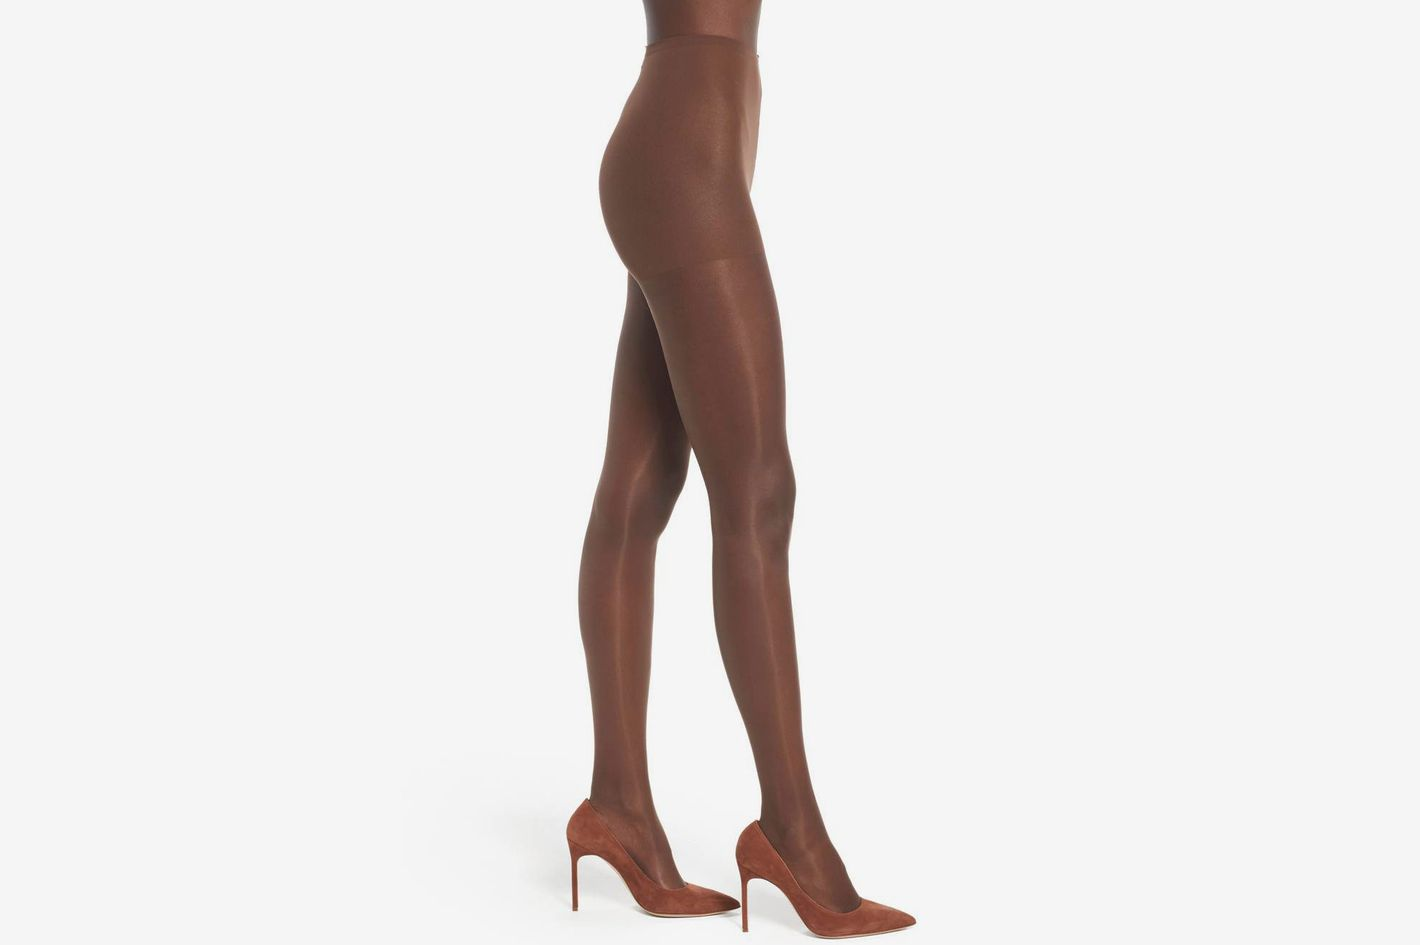 2da642a11d66f 7 Best Pairs of Sheer Pantyhose and Hosiery 2018